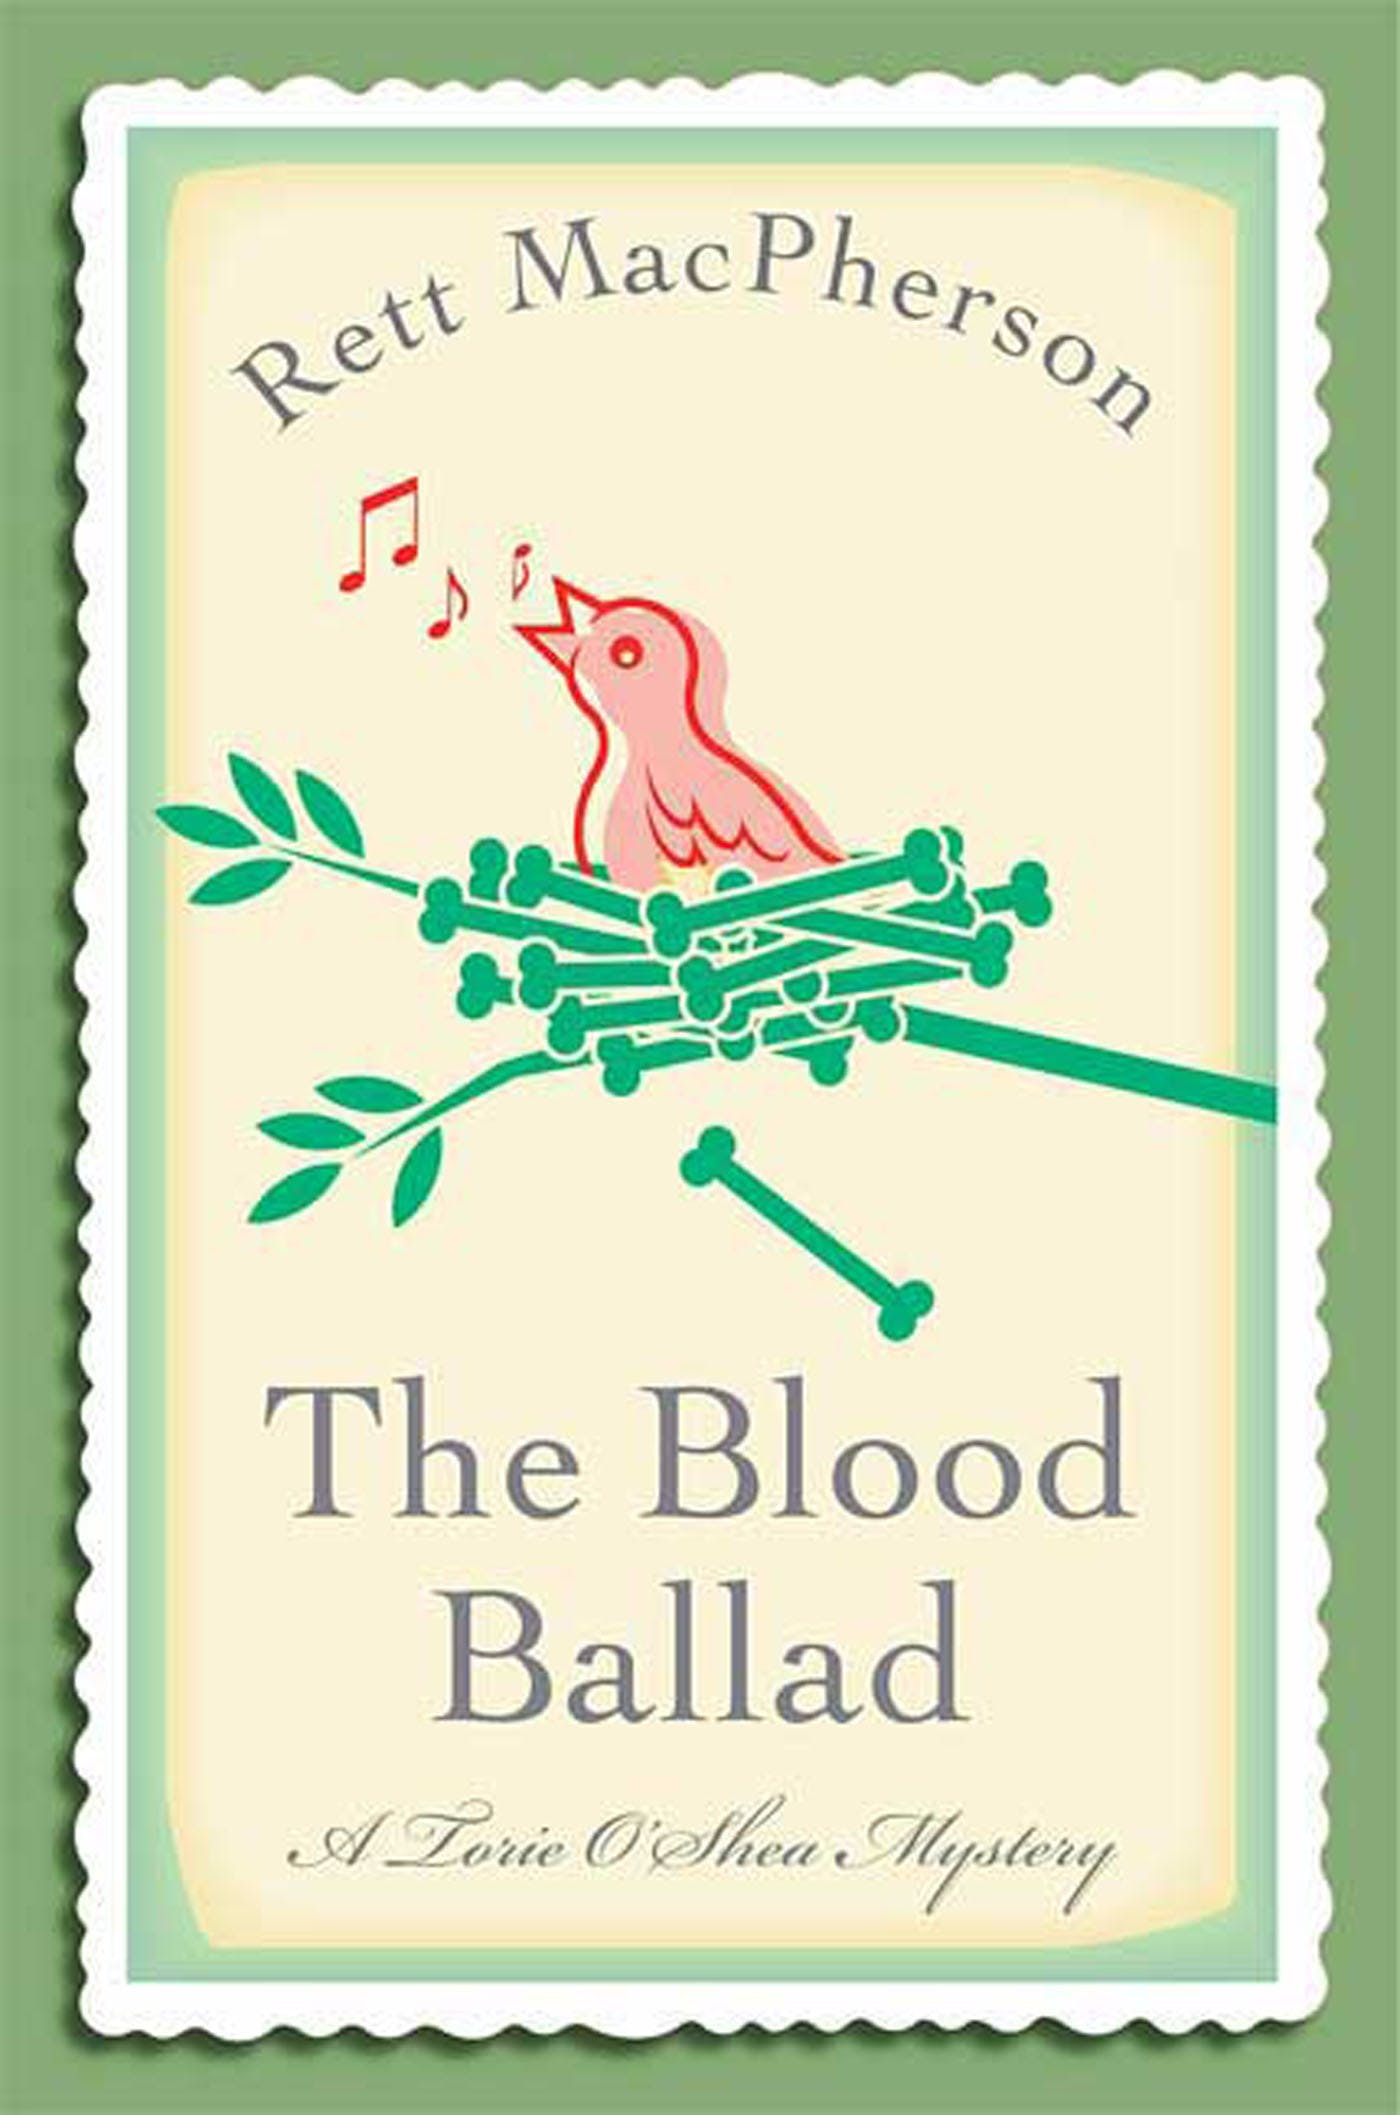 Image of The Blood Ballad